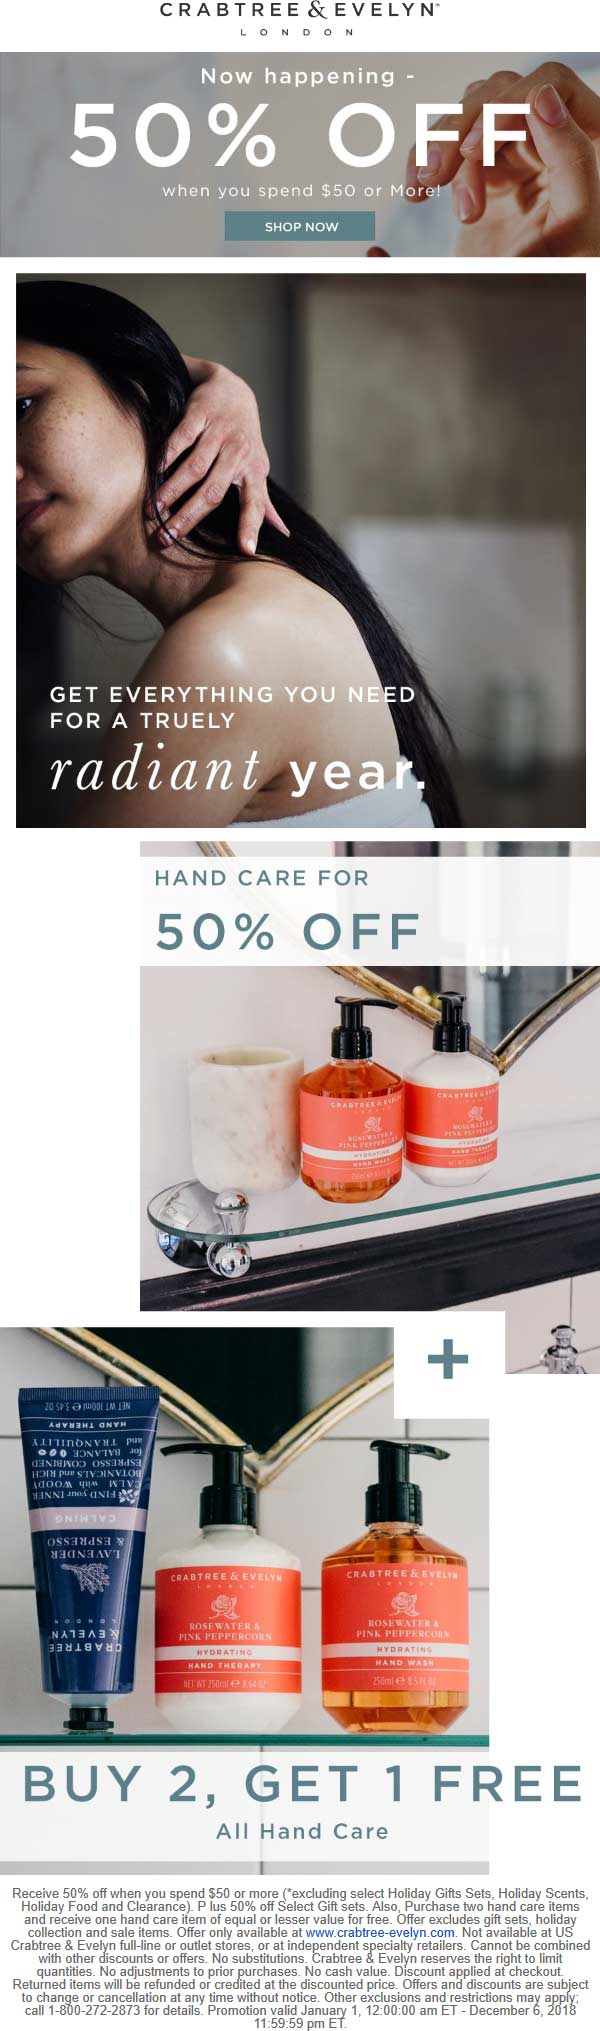 Crabtree & Evelyn Coupon July 2019 50% off $50+ & more online at Crabtree & Evelyn